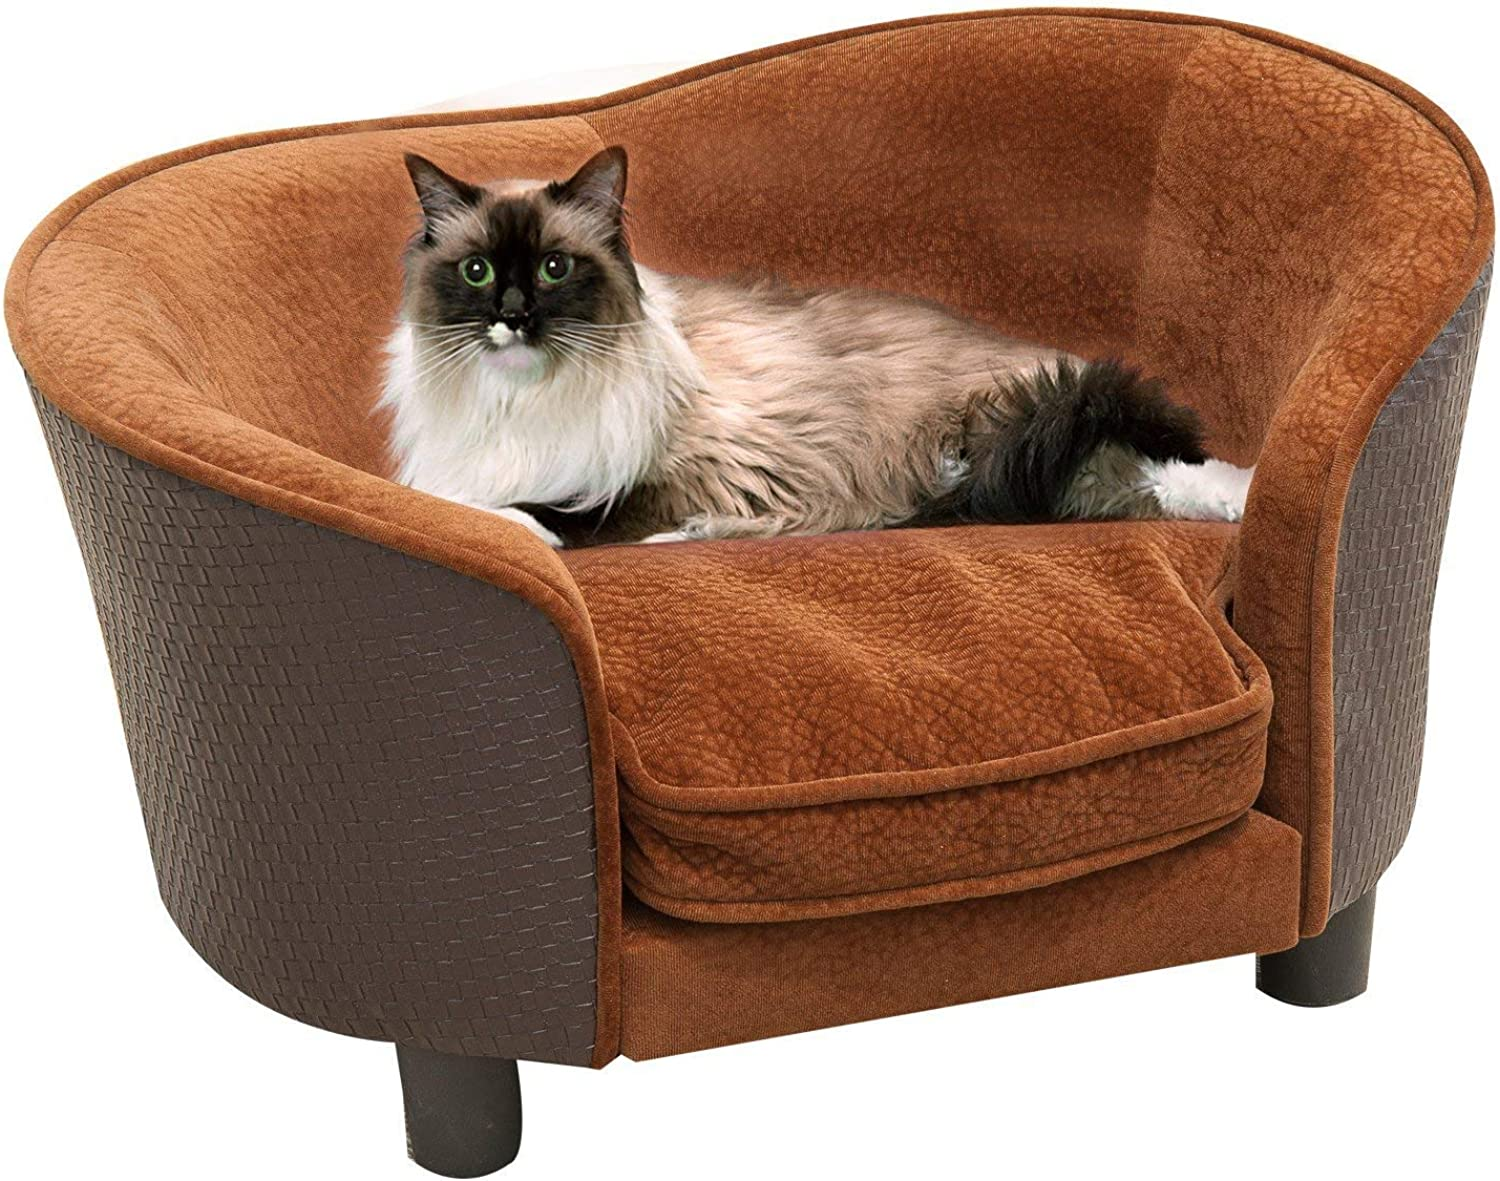 Festnight Pet Dog Cat Sofa Bed Warm Dog Bed Chair with Removable Washable Cushion